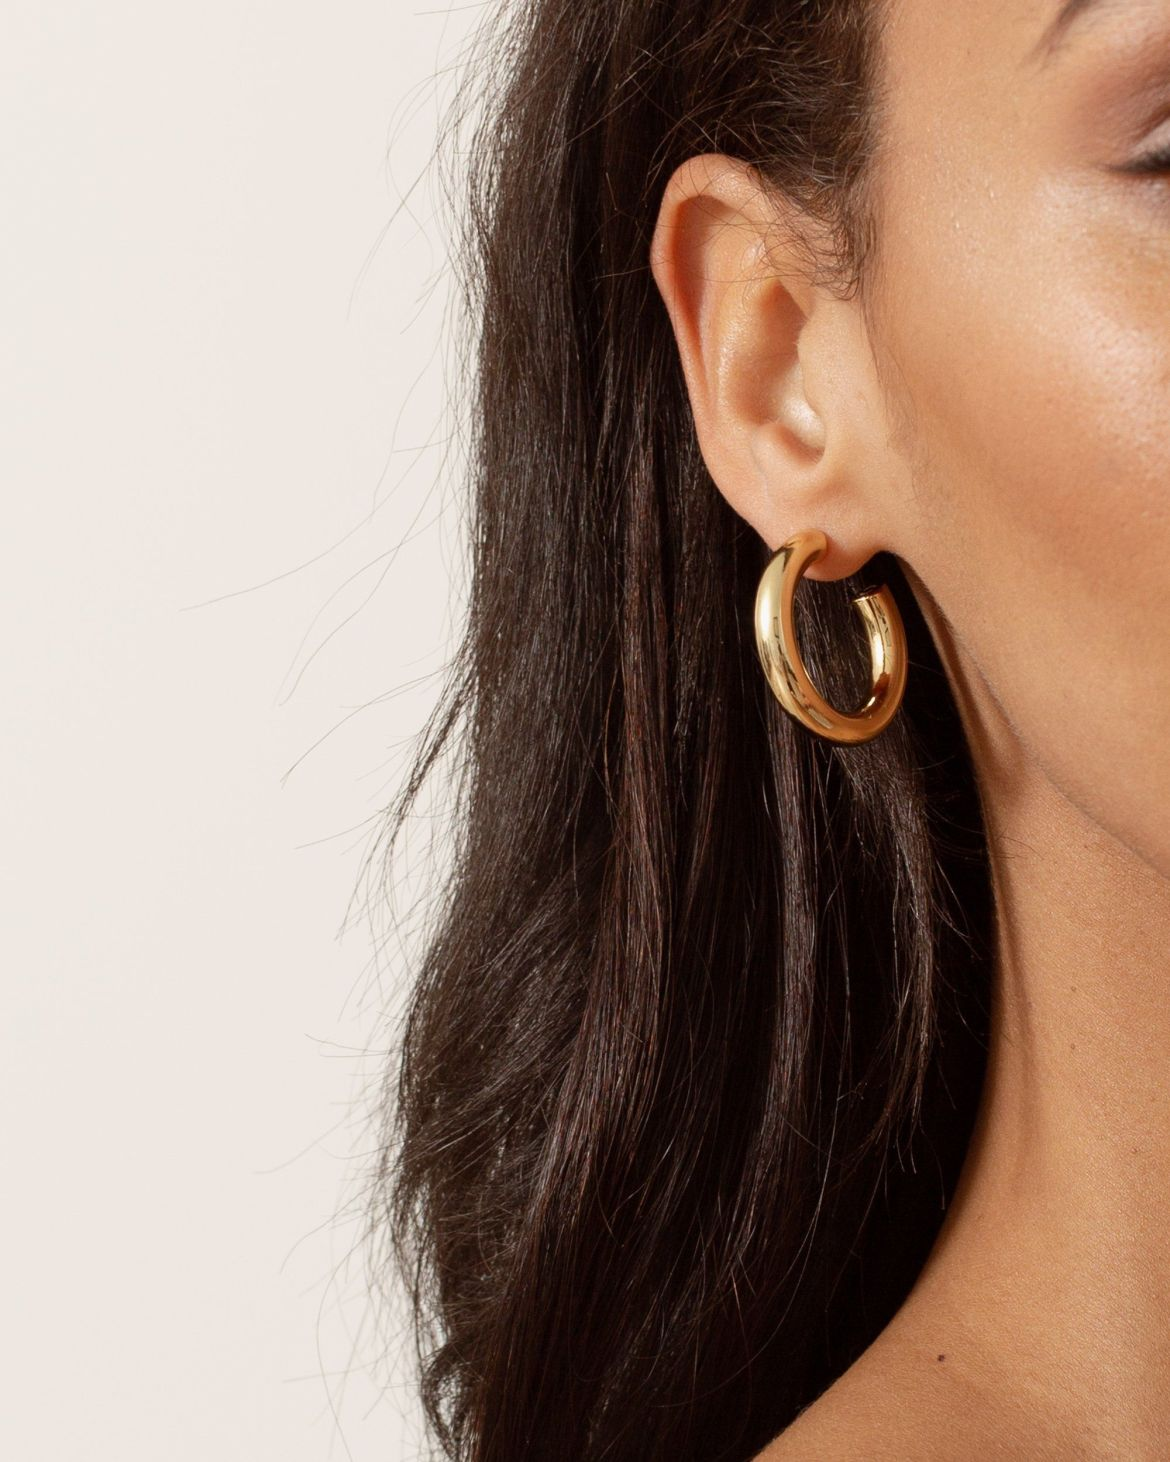 8 Jewelry Staples To Upgrade Your Look